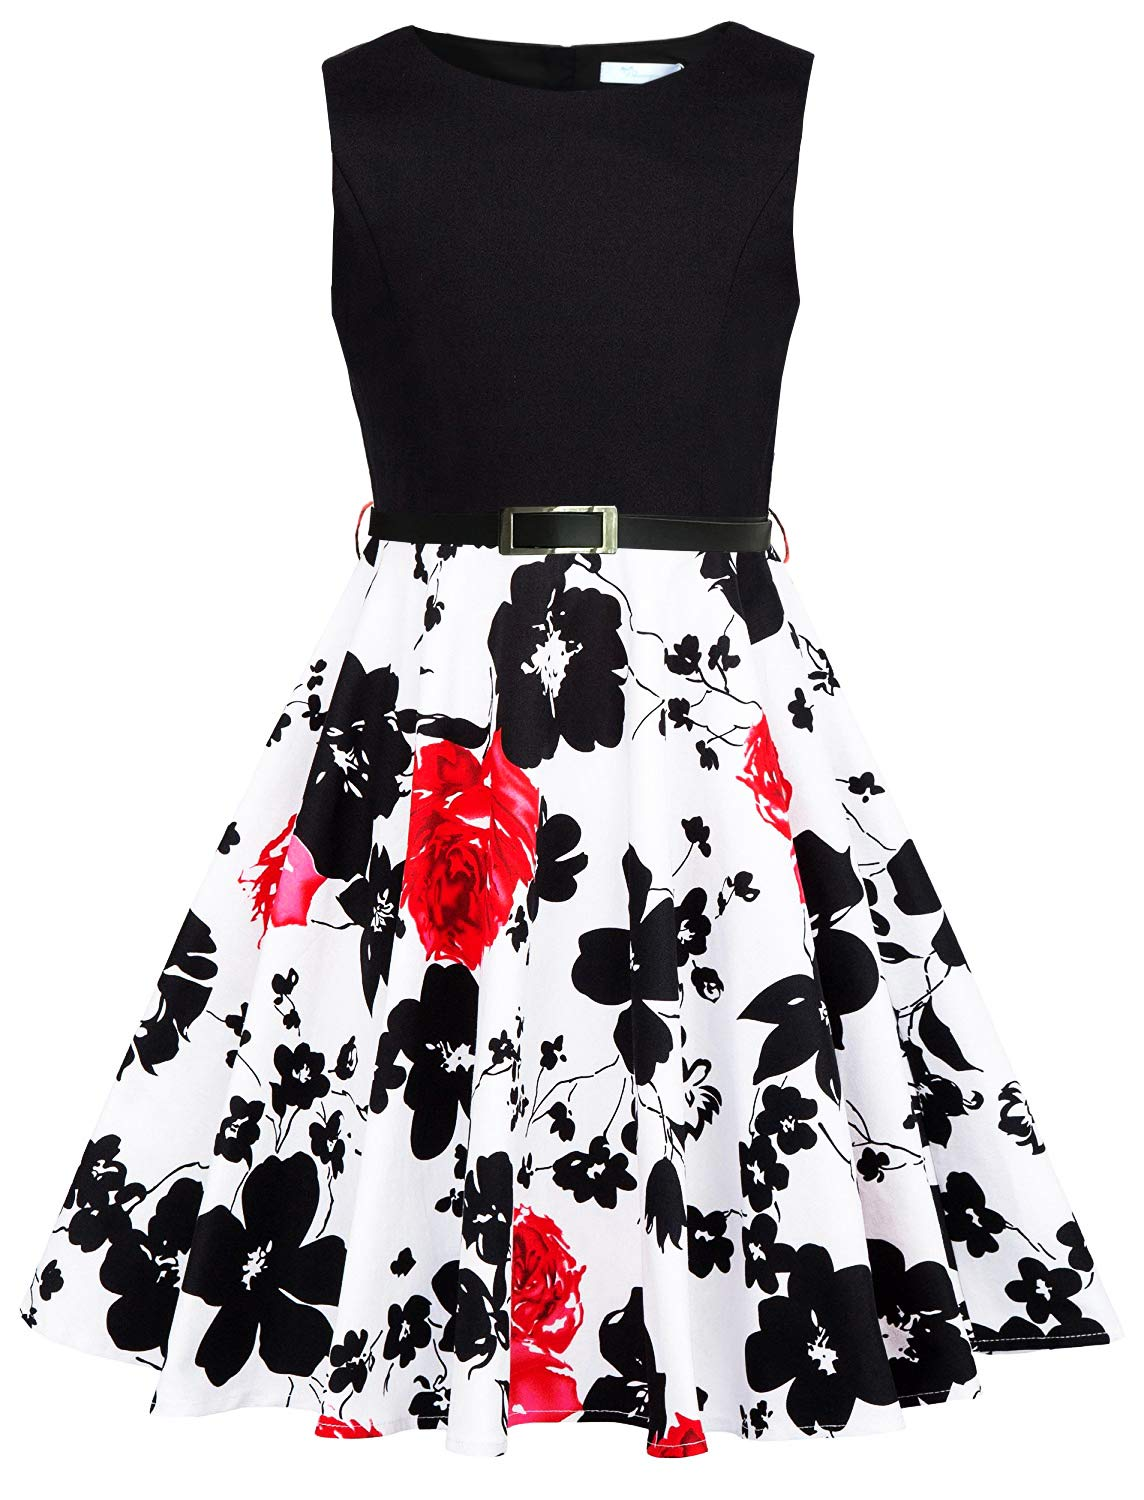 Sharequeen Girls Summer Sleeveless Fit and Flare Patchwork Print Party Dresses A099 (6-7 Years, Black)